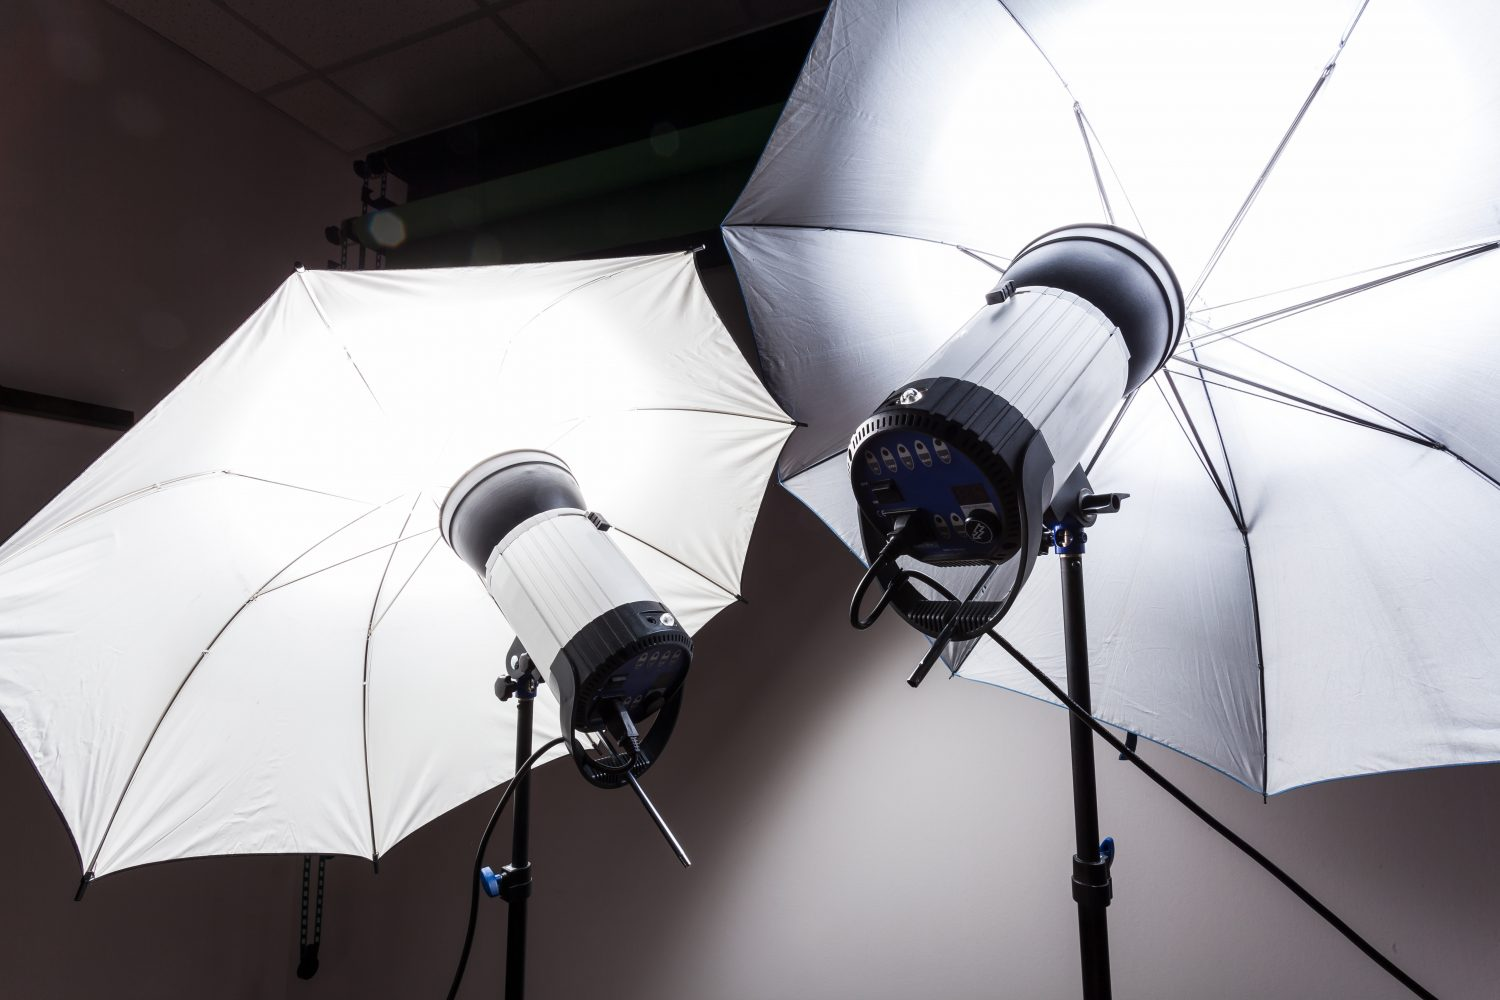 Photography studio flash strobe for light and picture taking